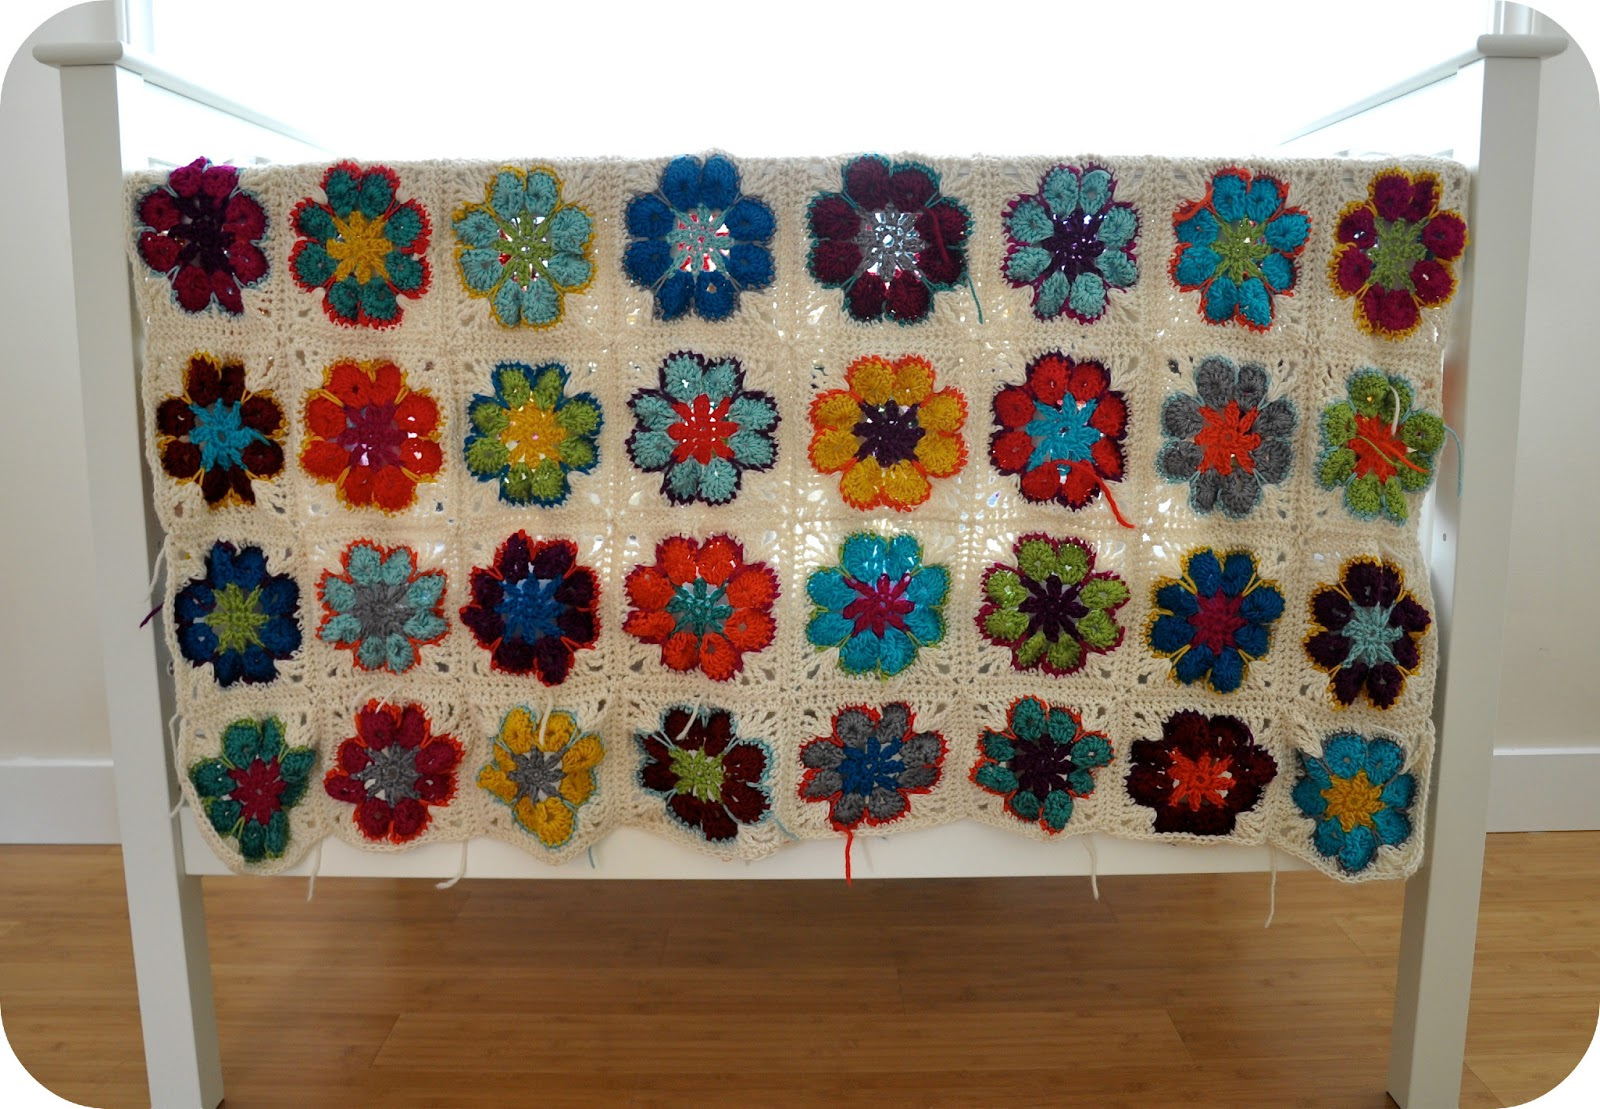 If you want to make this crochet granny square blanket too,